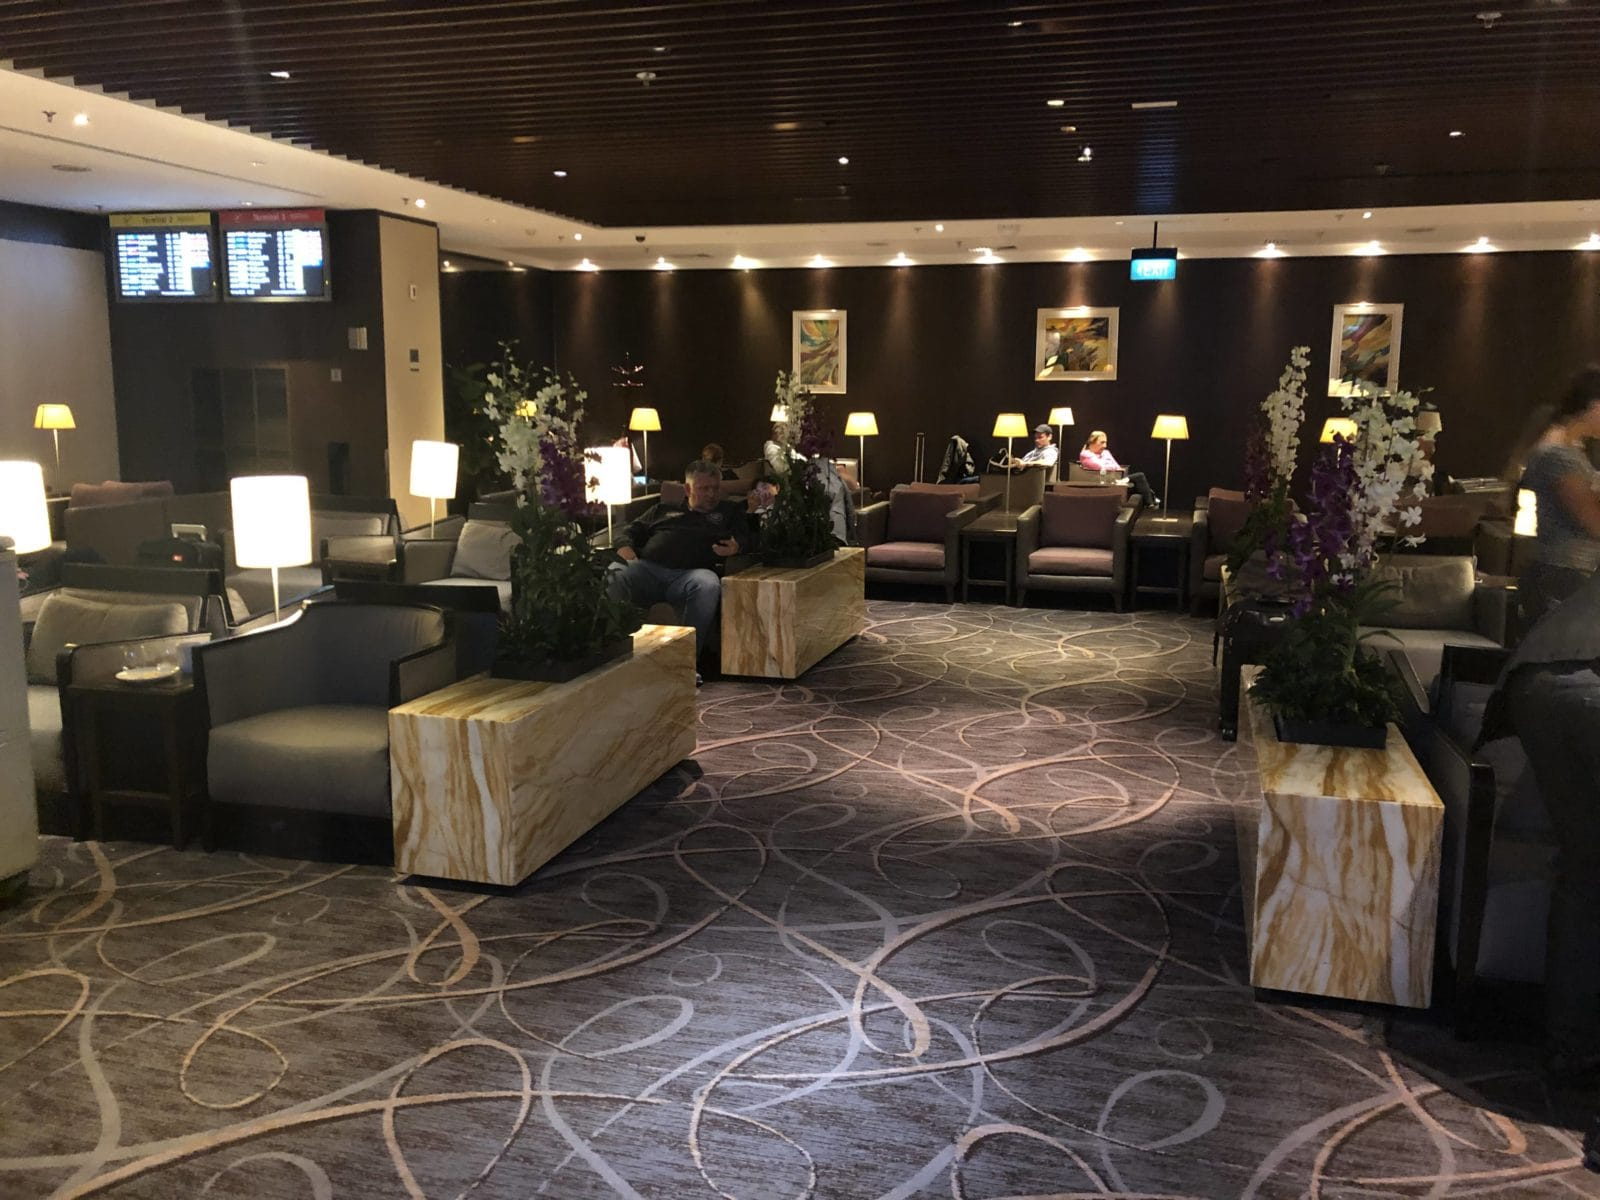 Singapore Airlines SilverKris Lounge Terminal 2 Sitzbereich in der Lounge